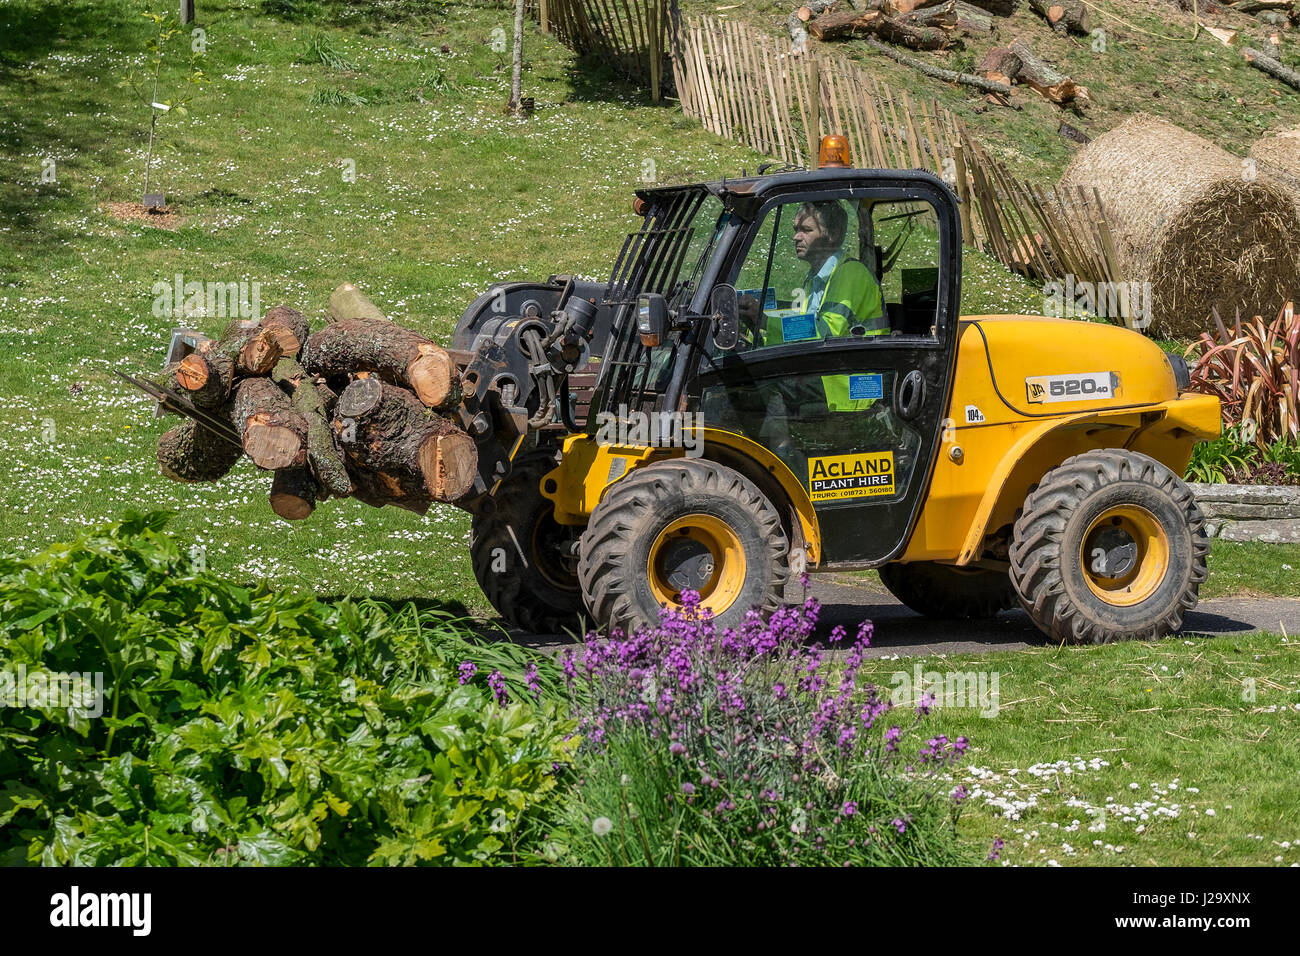 JCB 520 40 Agri Loadall Telescopic Handler Vehicle Carrying cut logs Driver Working vehicle Outside - Stock Image